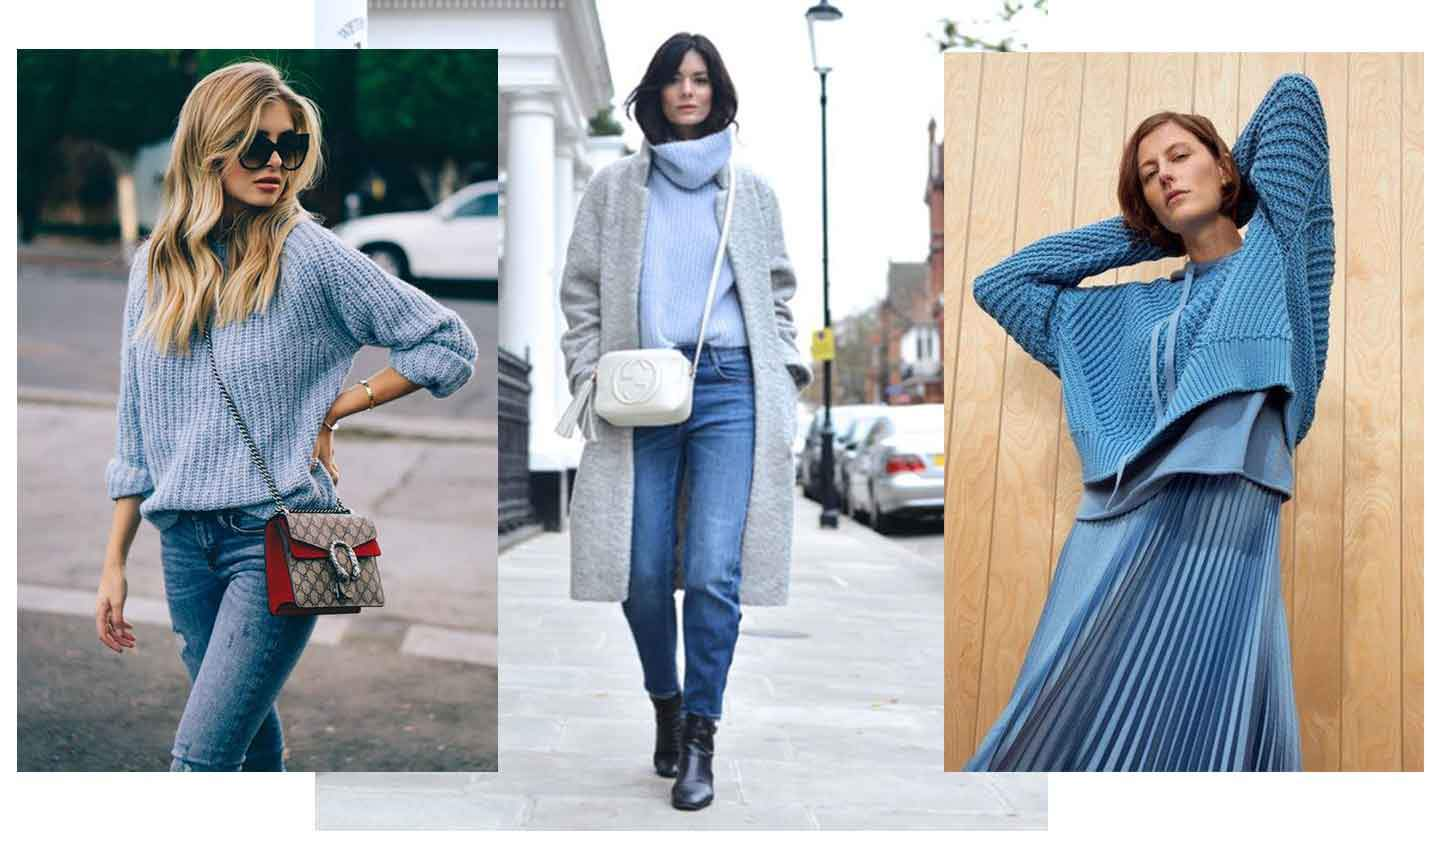 3 images of 3 women each wearing a blue knitted jumper with various outfit options